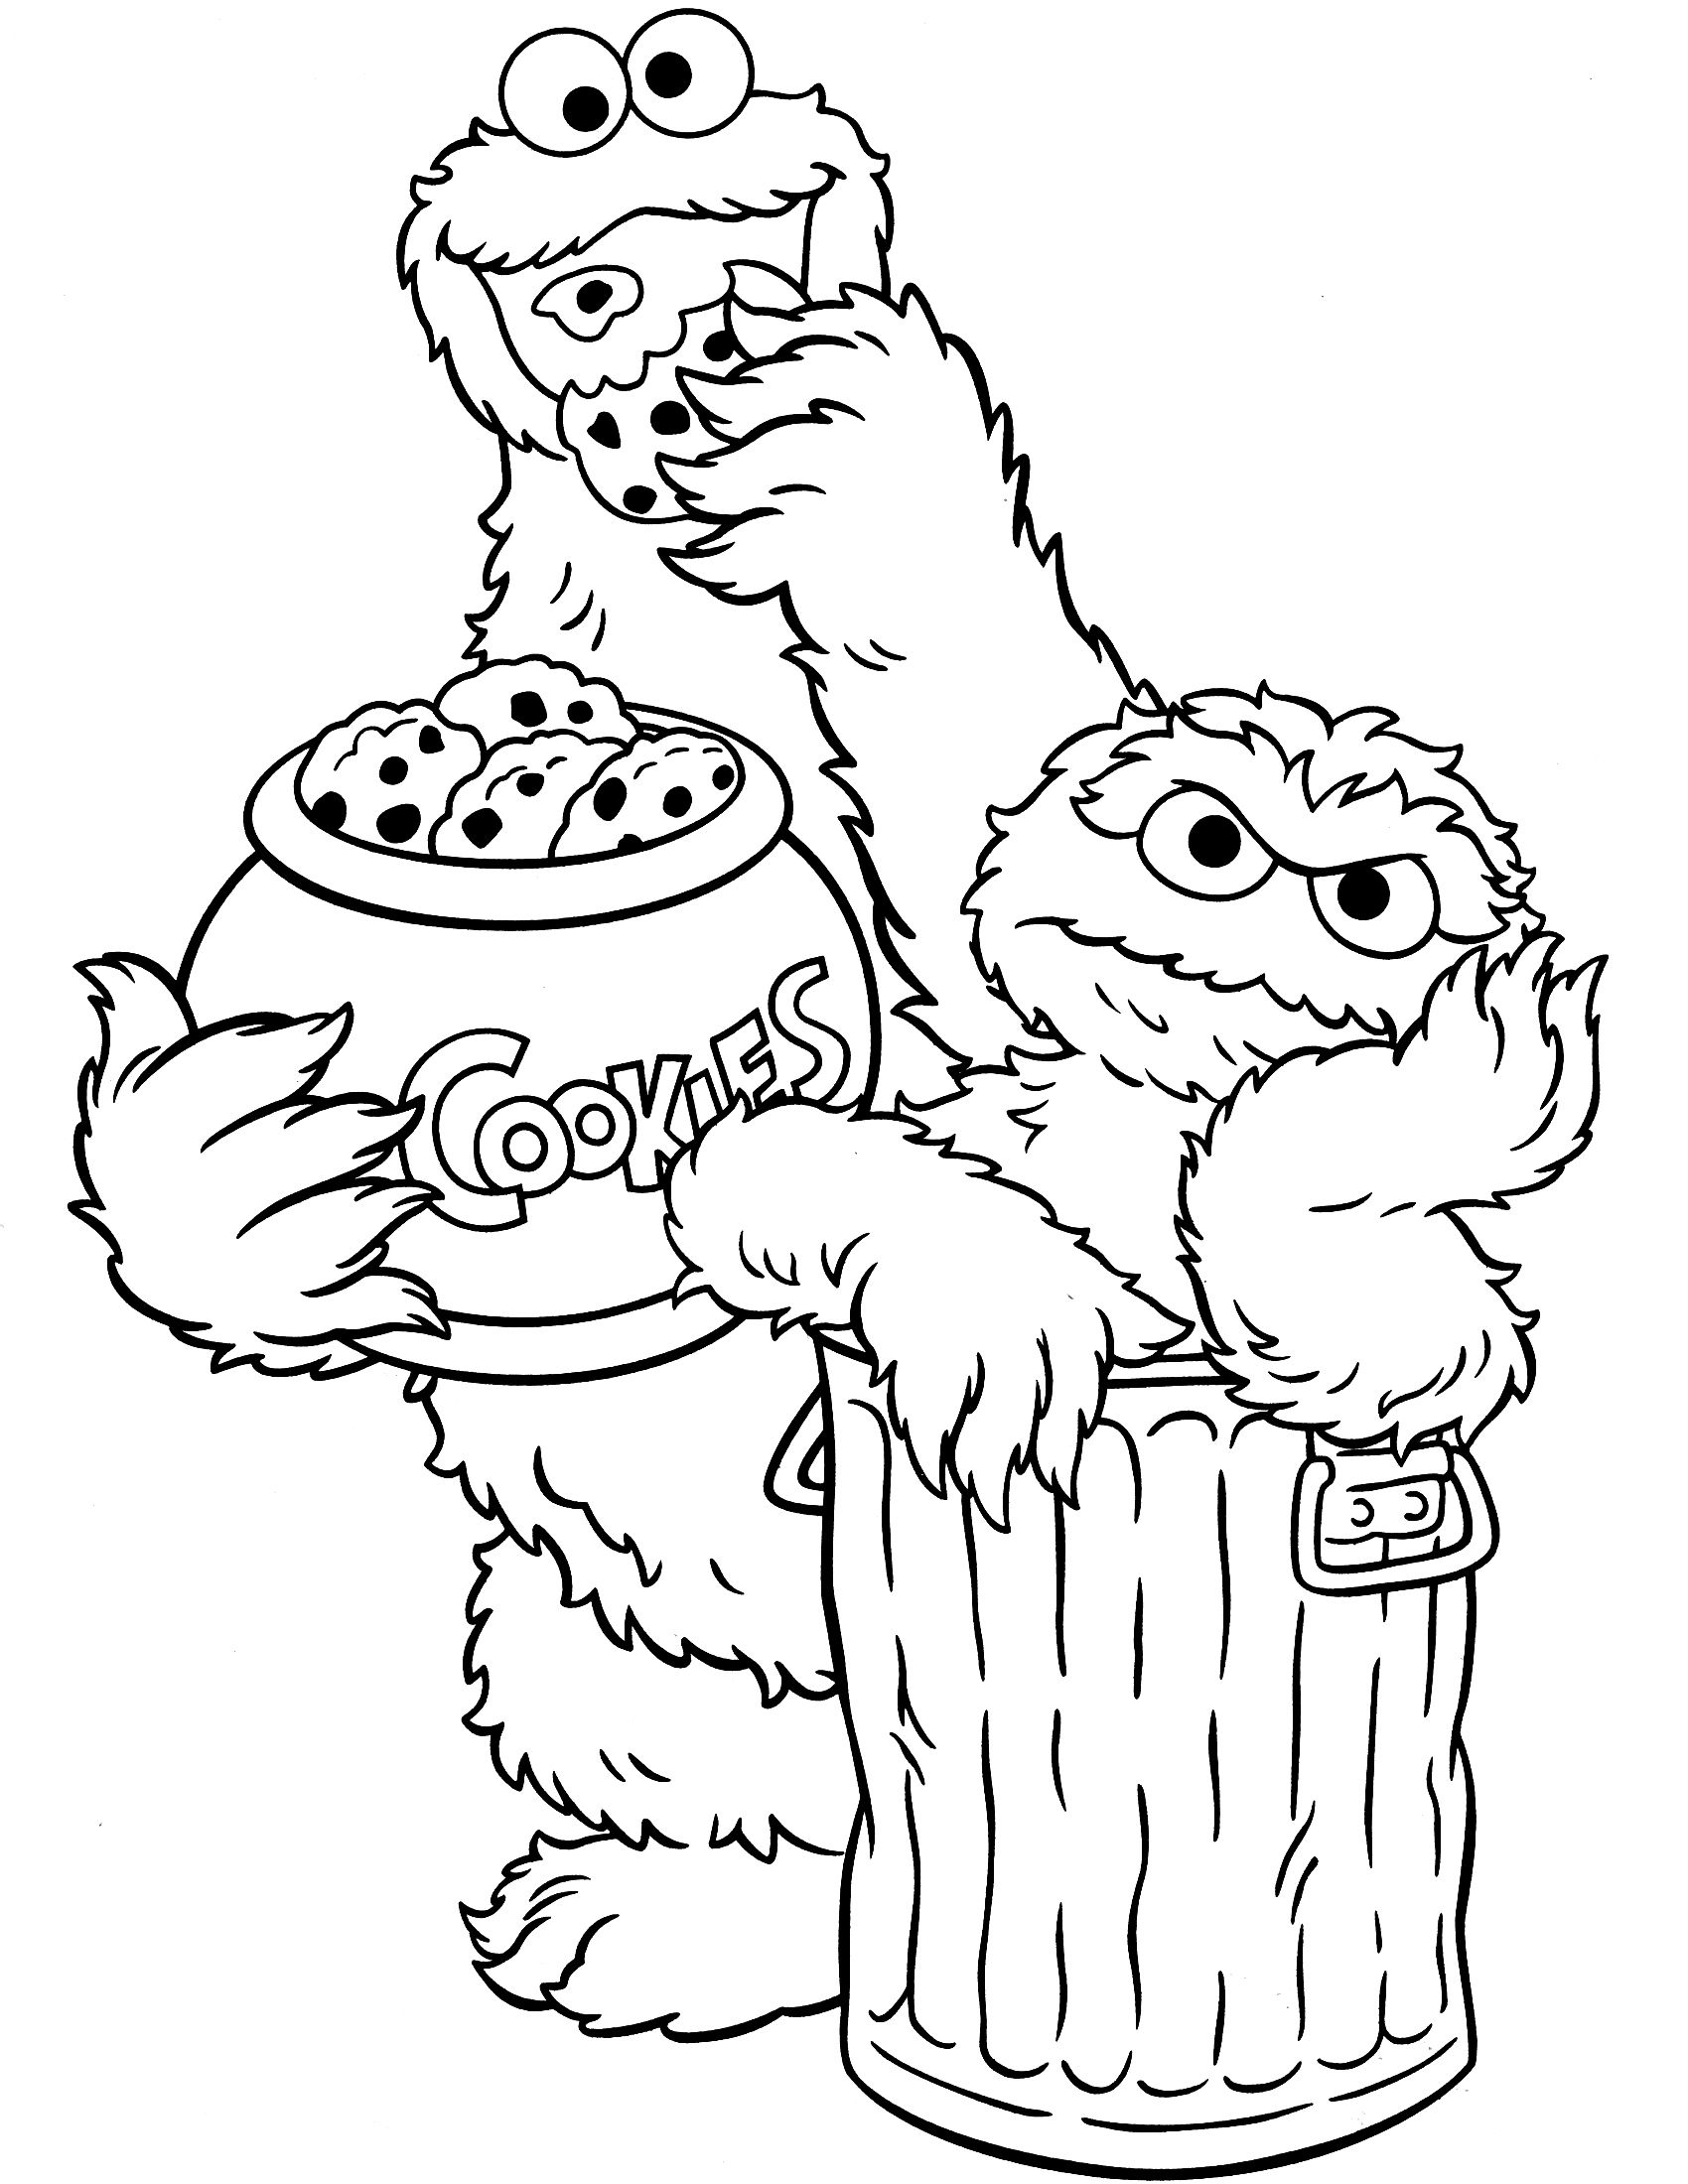 happy birthday elmo coloring pages ; Printable-Happy-Birthday-Elmo-Coloring-Pages